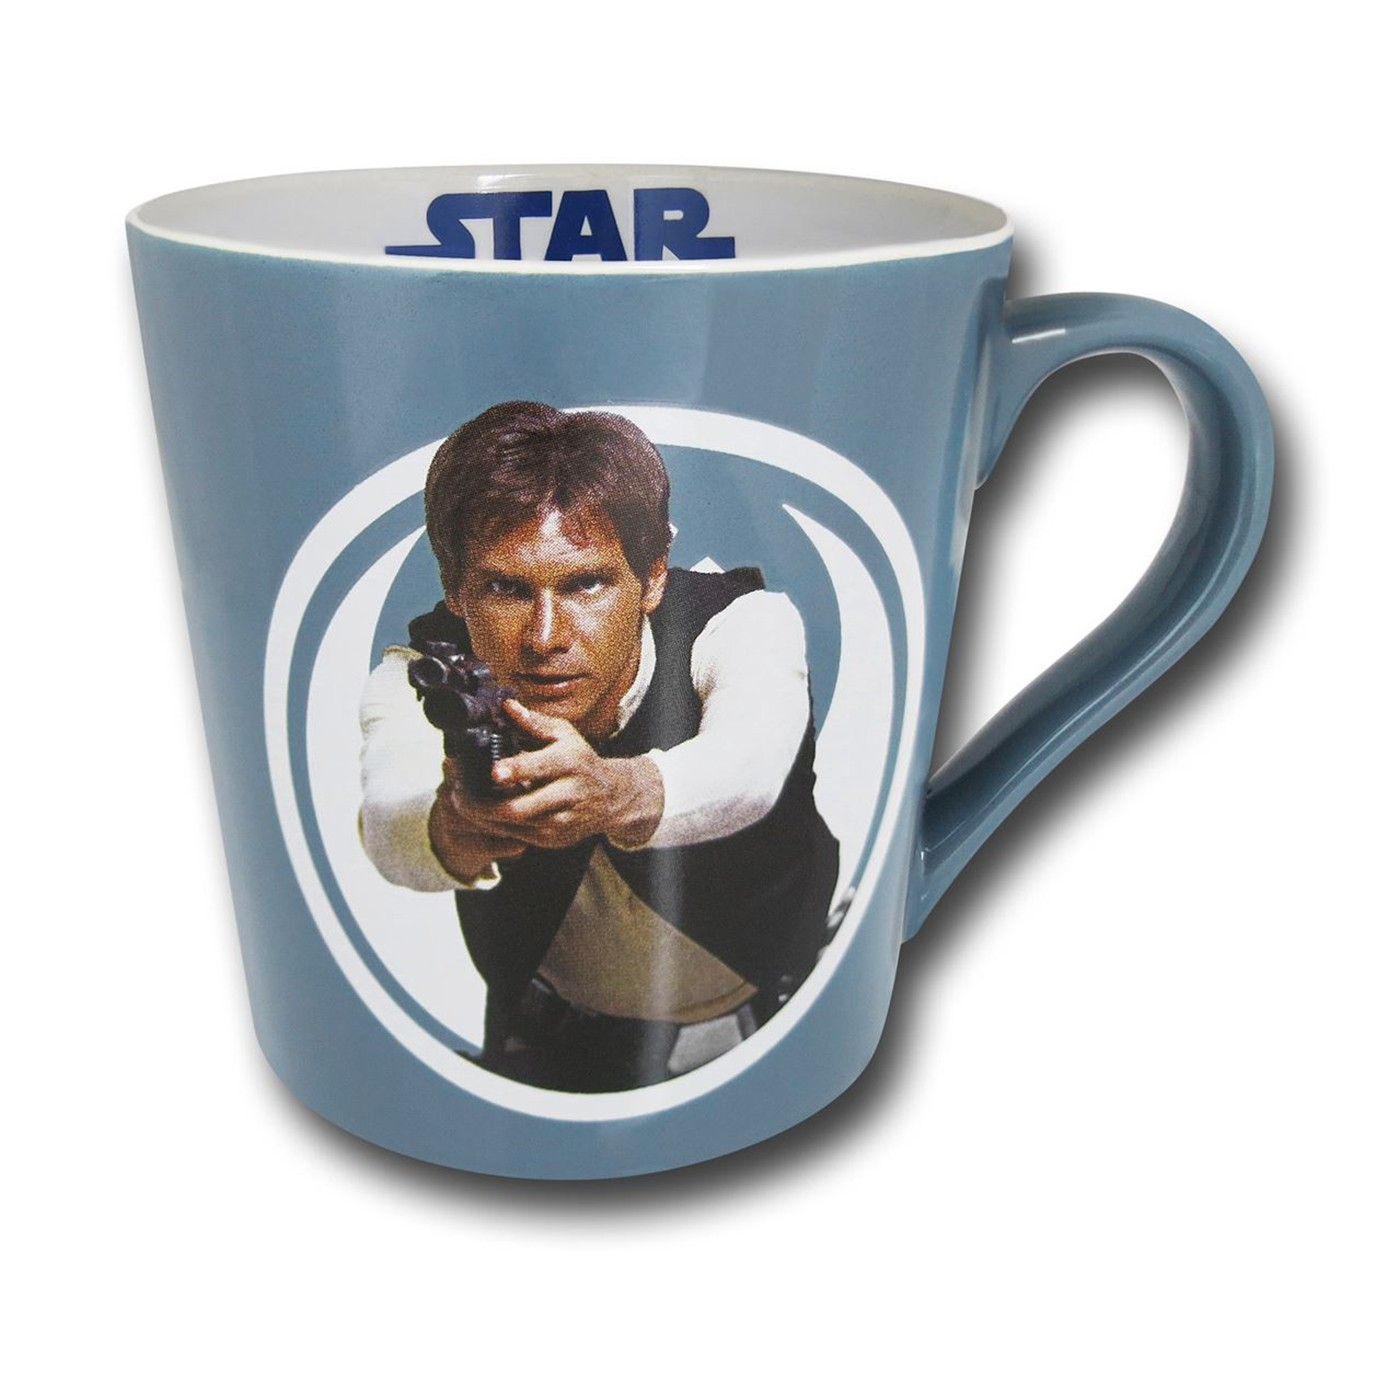 Star Wars Han Solo Odds 12oz Mug